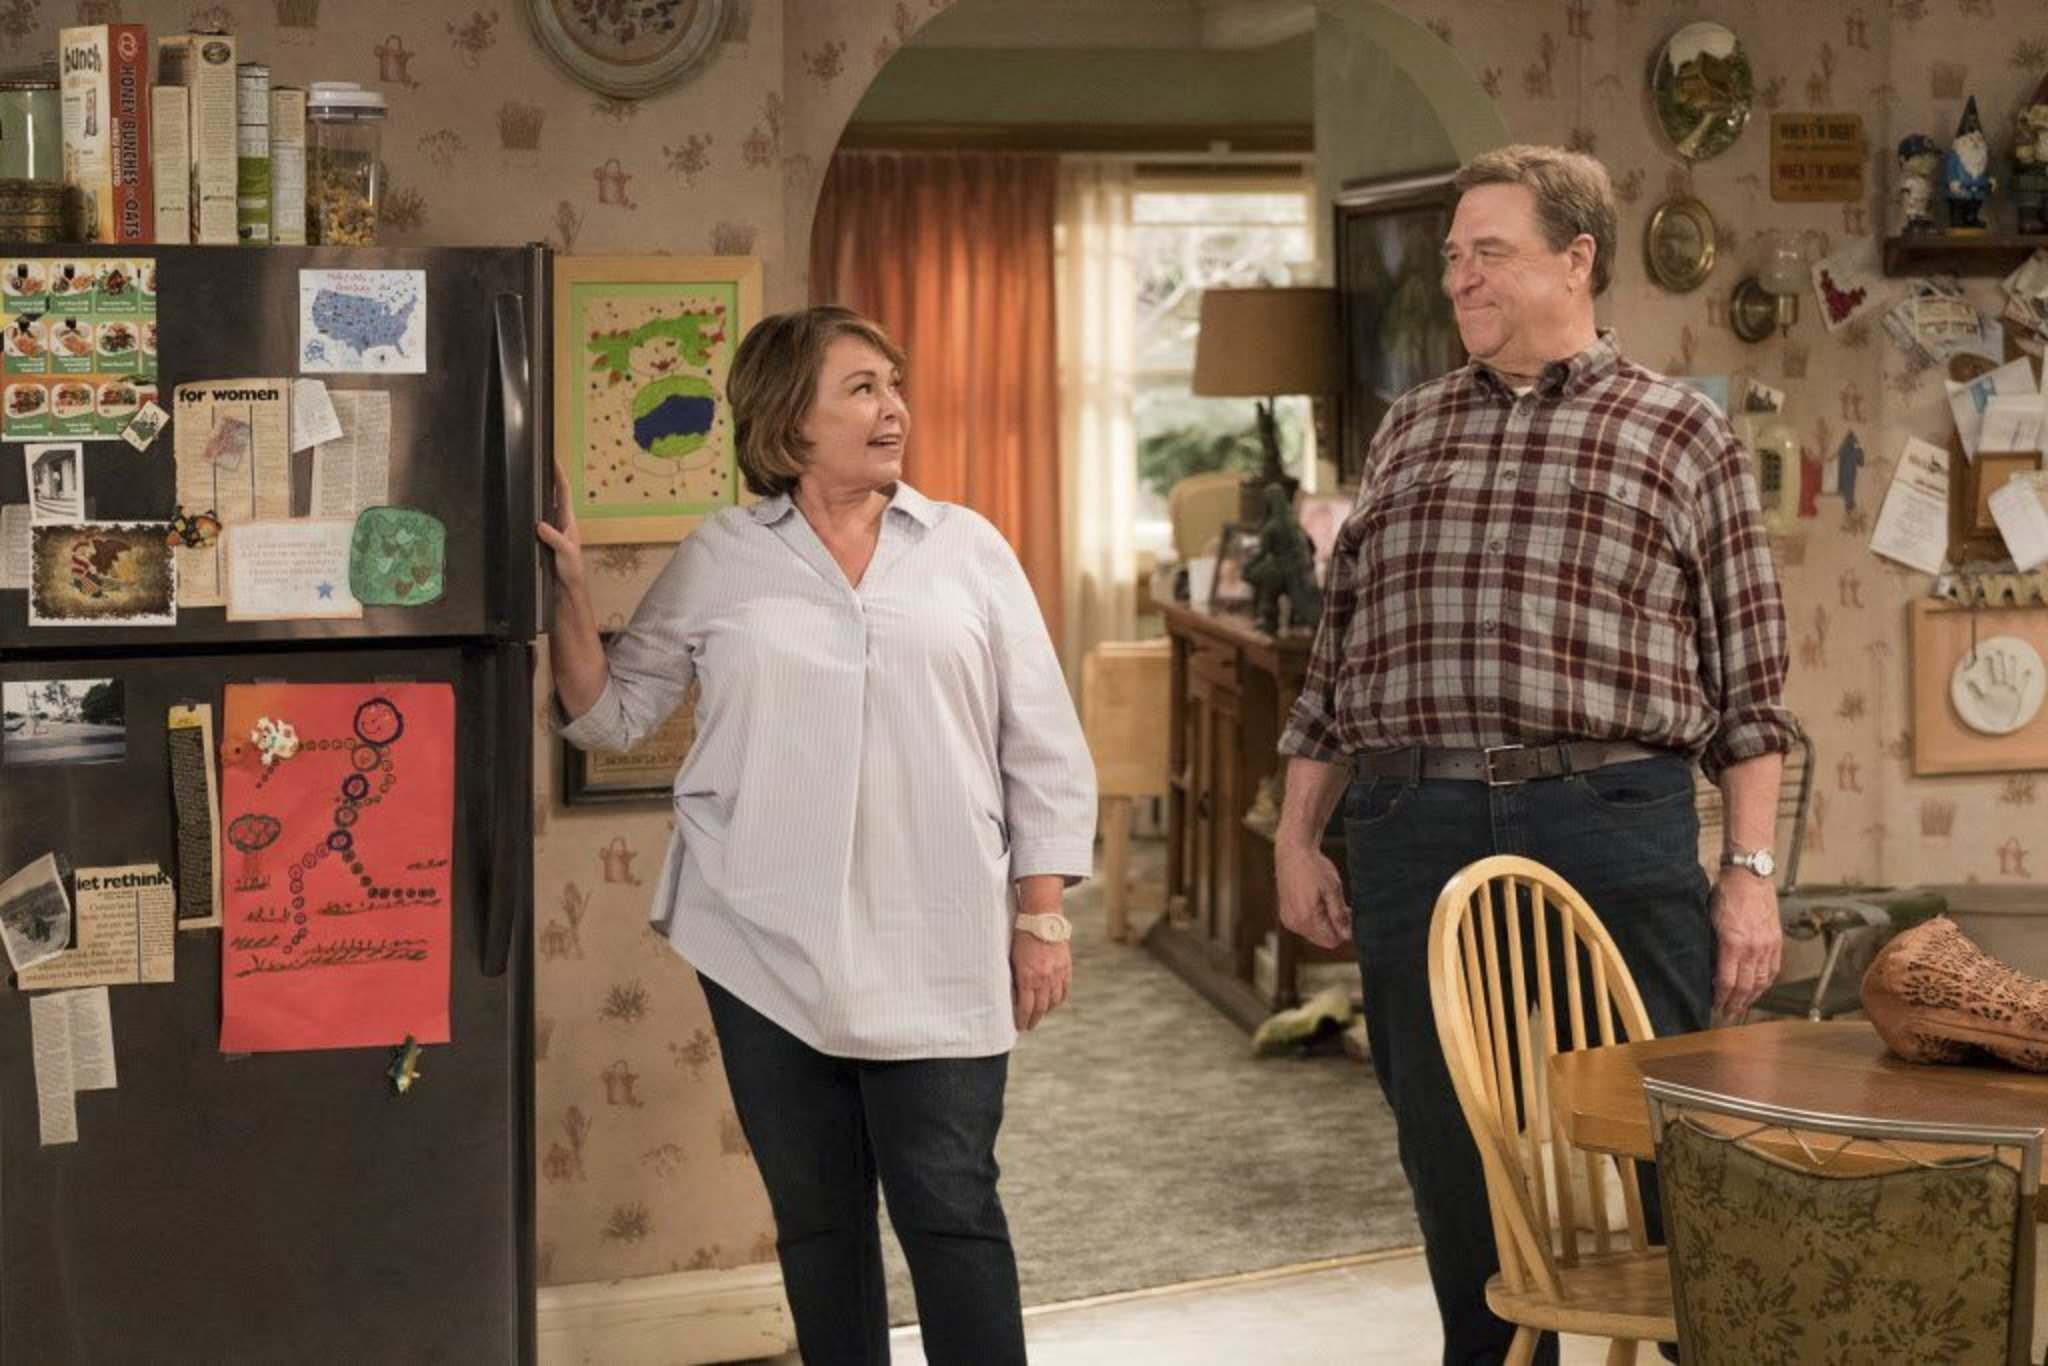 Adam Rose / ABC</p><p>Roseanne Barr (left) and John Goodman in a scene from the revived comedy series Roseanne, which tackles tricky territory this season..</p></p>